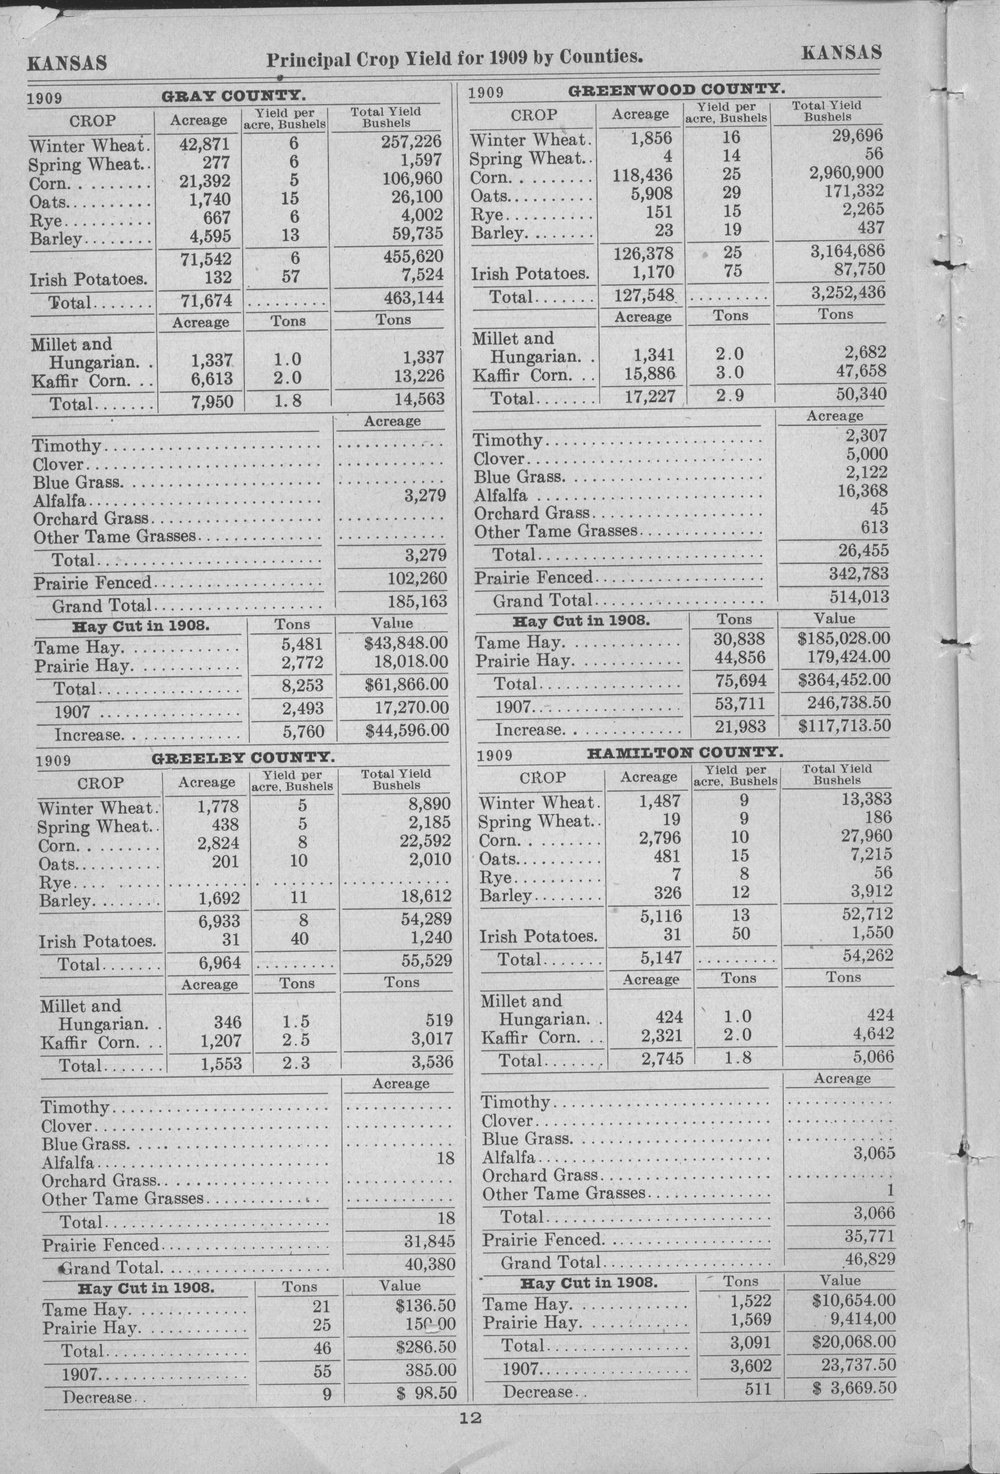 Prinicipal crop yields by counties of Kansas for 1909 - 12